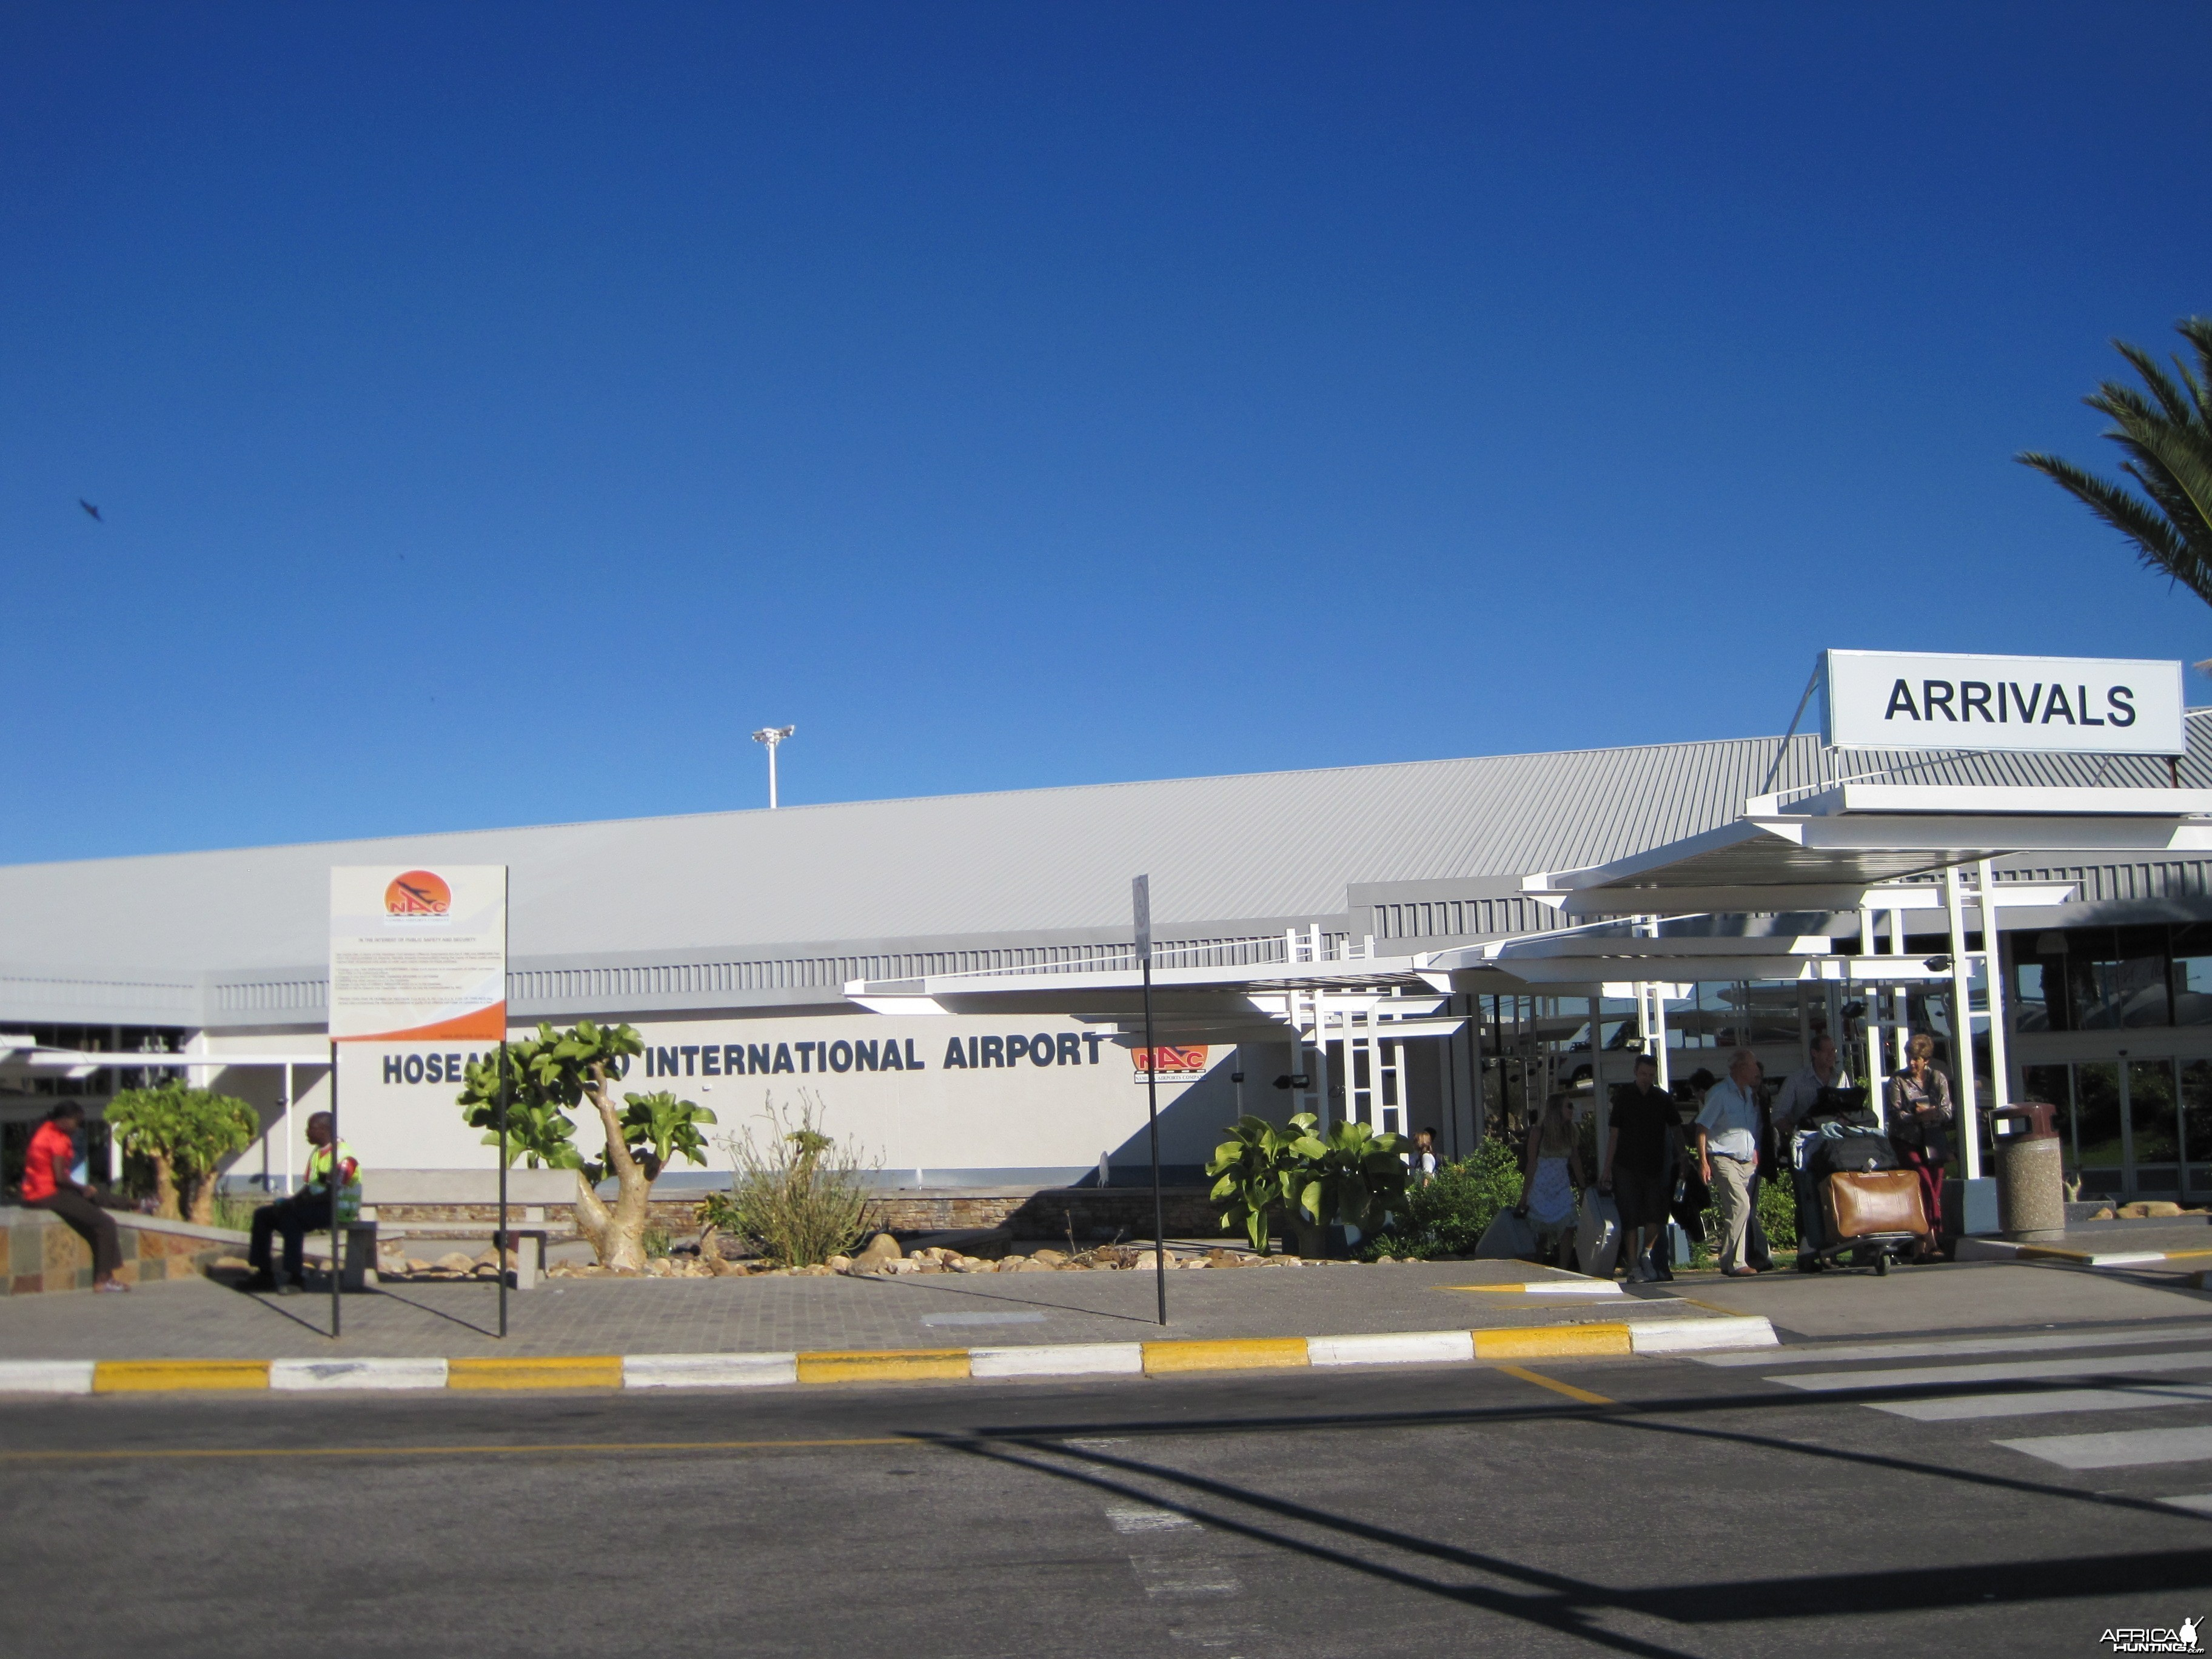 Arrivals at the International Airport in Windhoek, Namibia